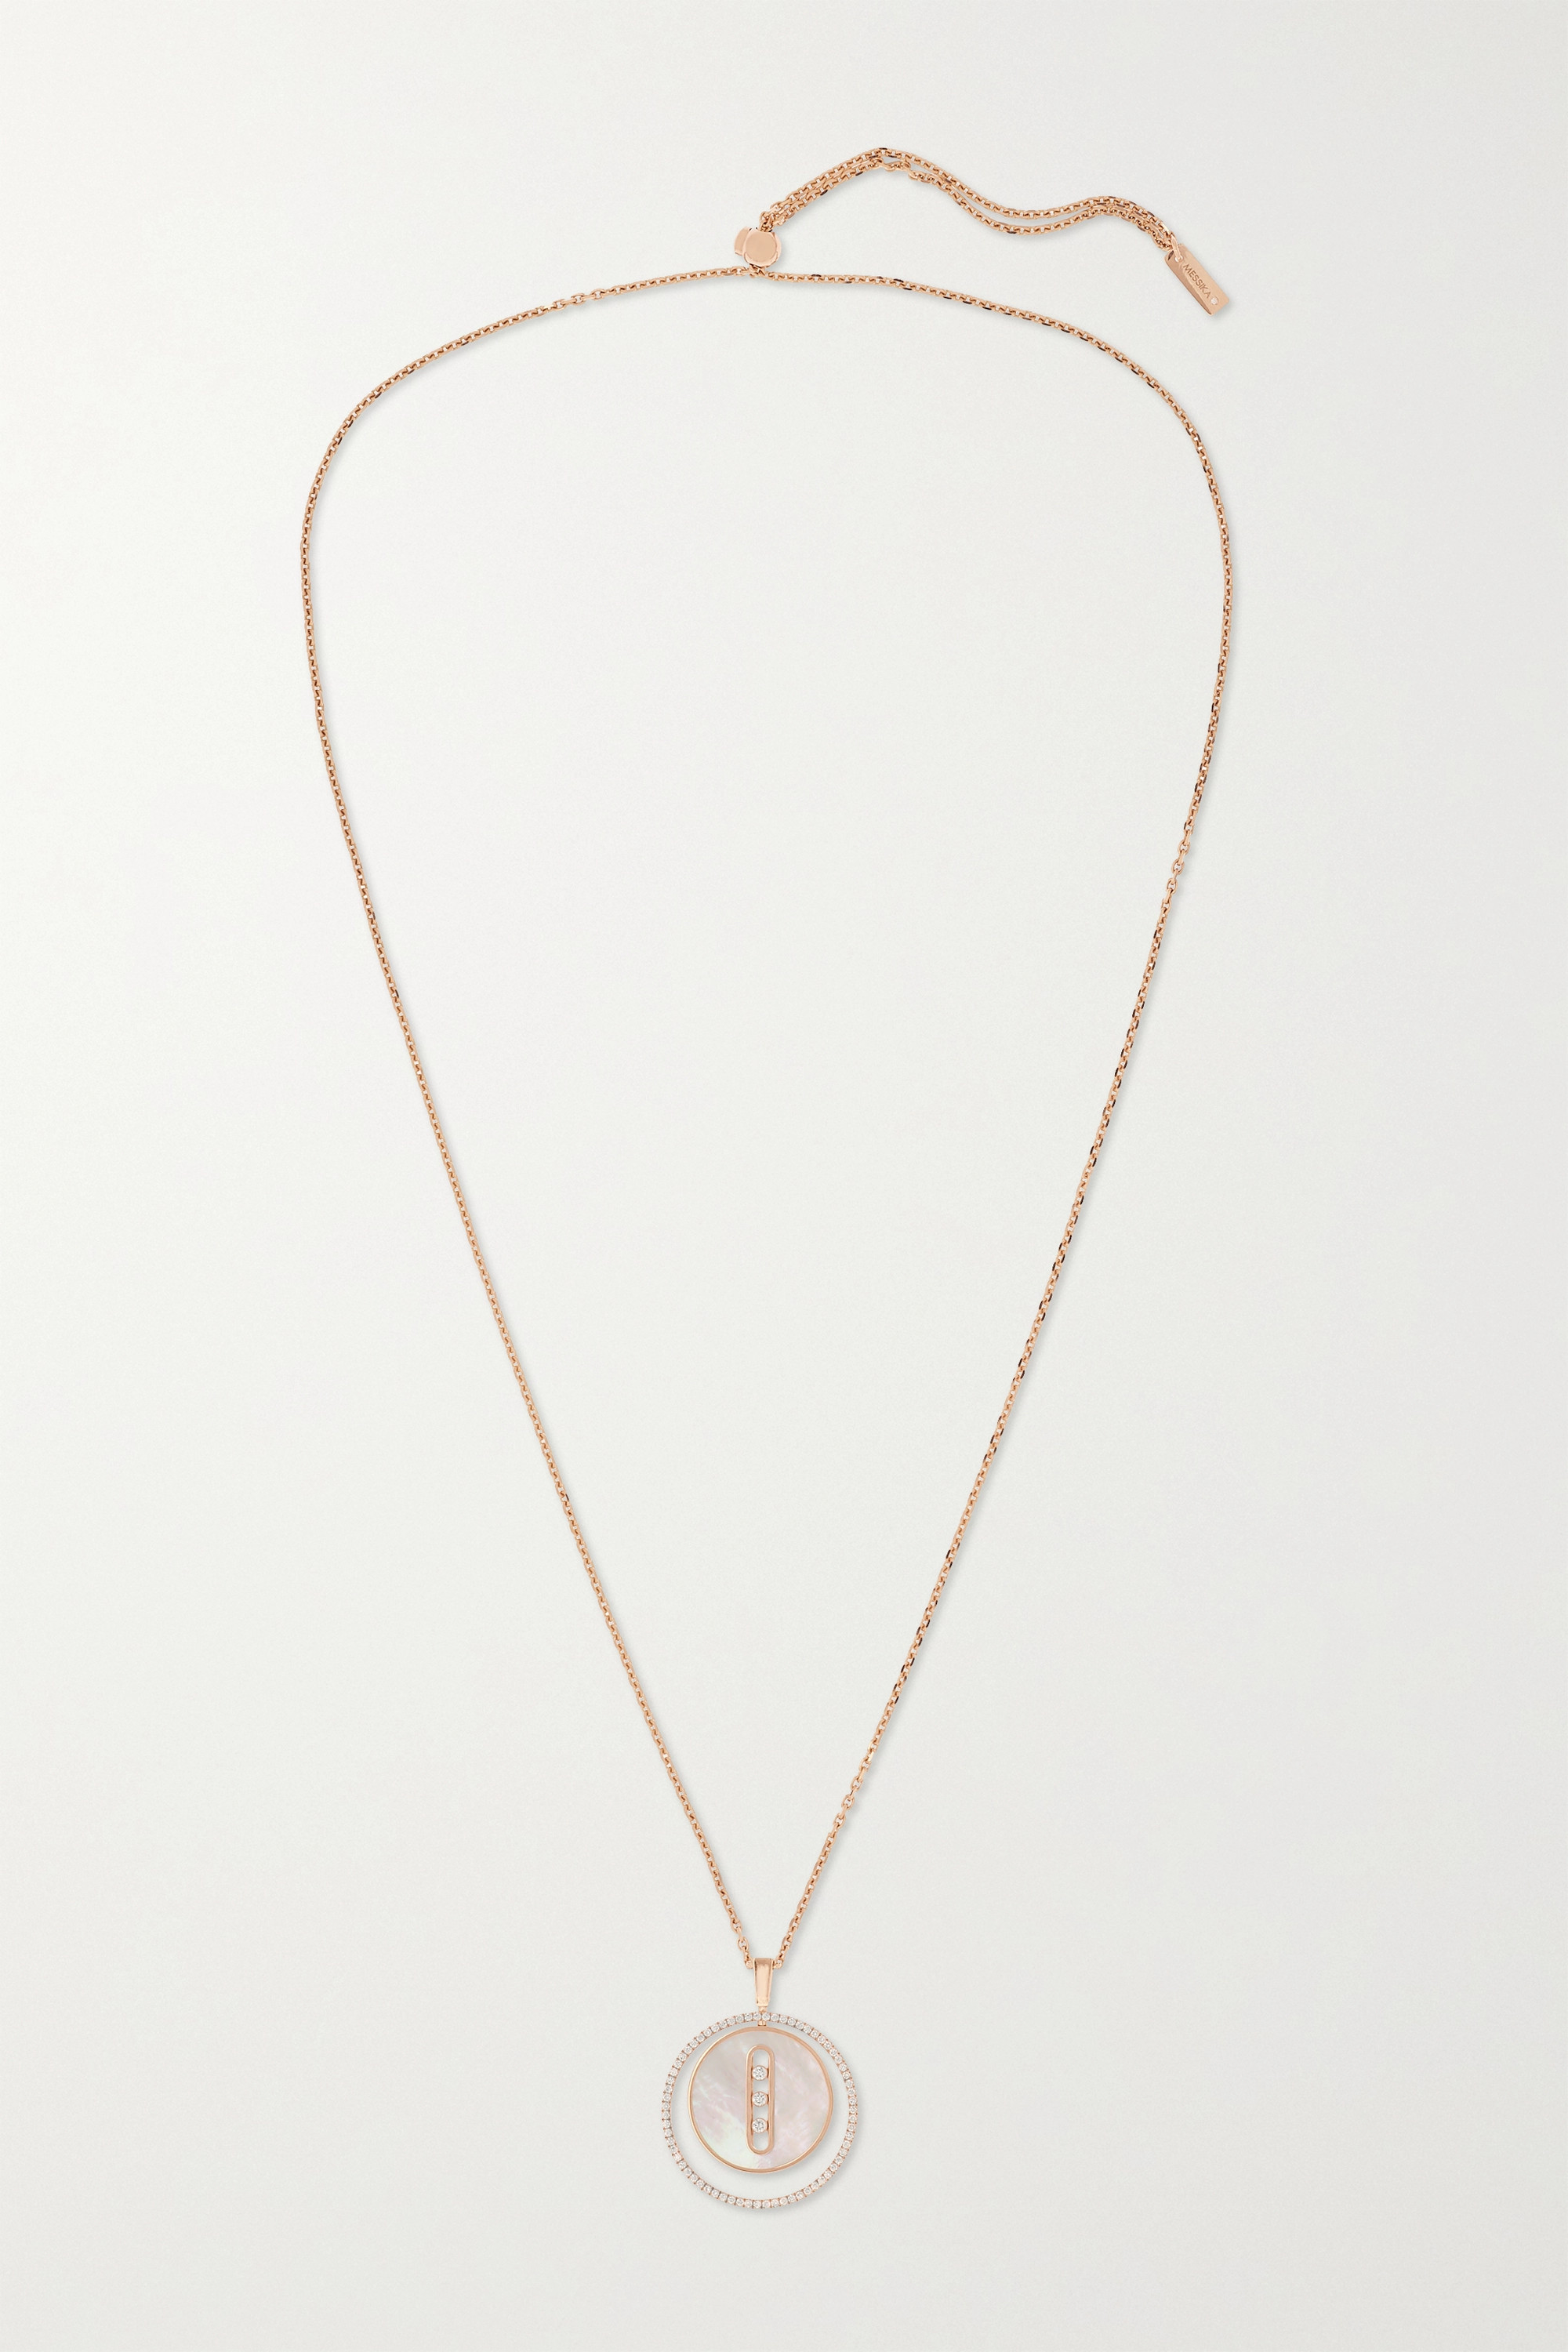 MESSIKA Lucky Move 18-karat rose gold, mother-of-pearl and diamond necklace